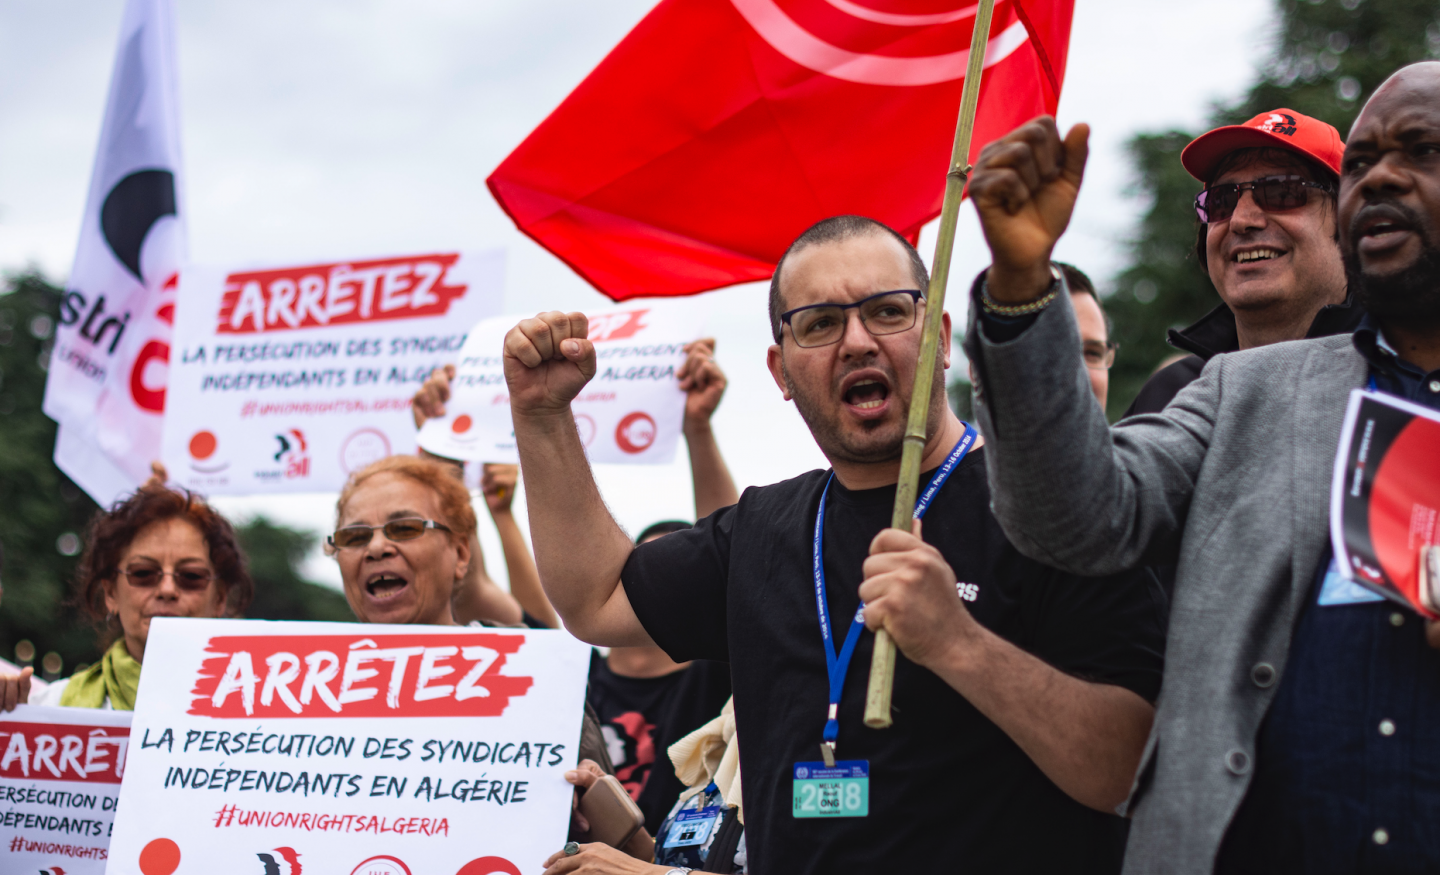 Workers in Algeria to stage further strikes | IndustriALL